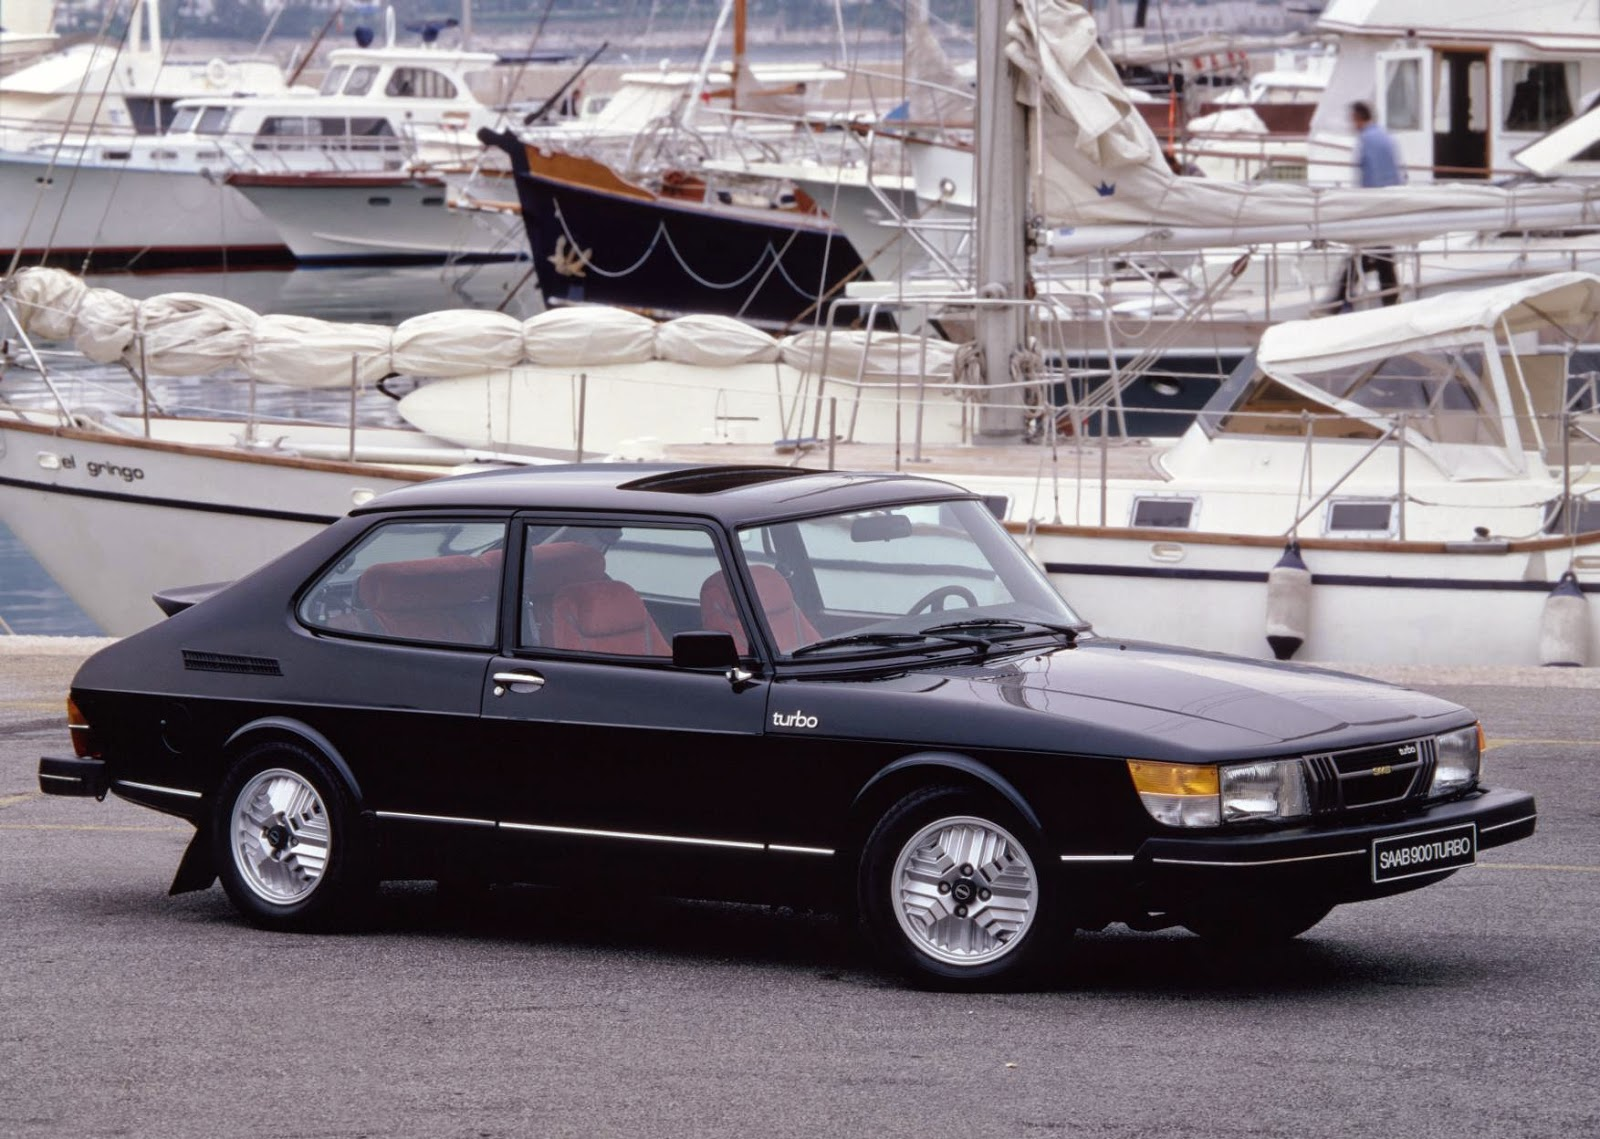 An early Saab 900 Turbo